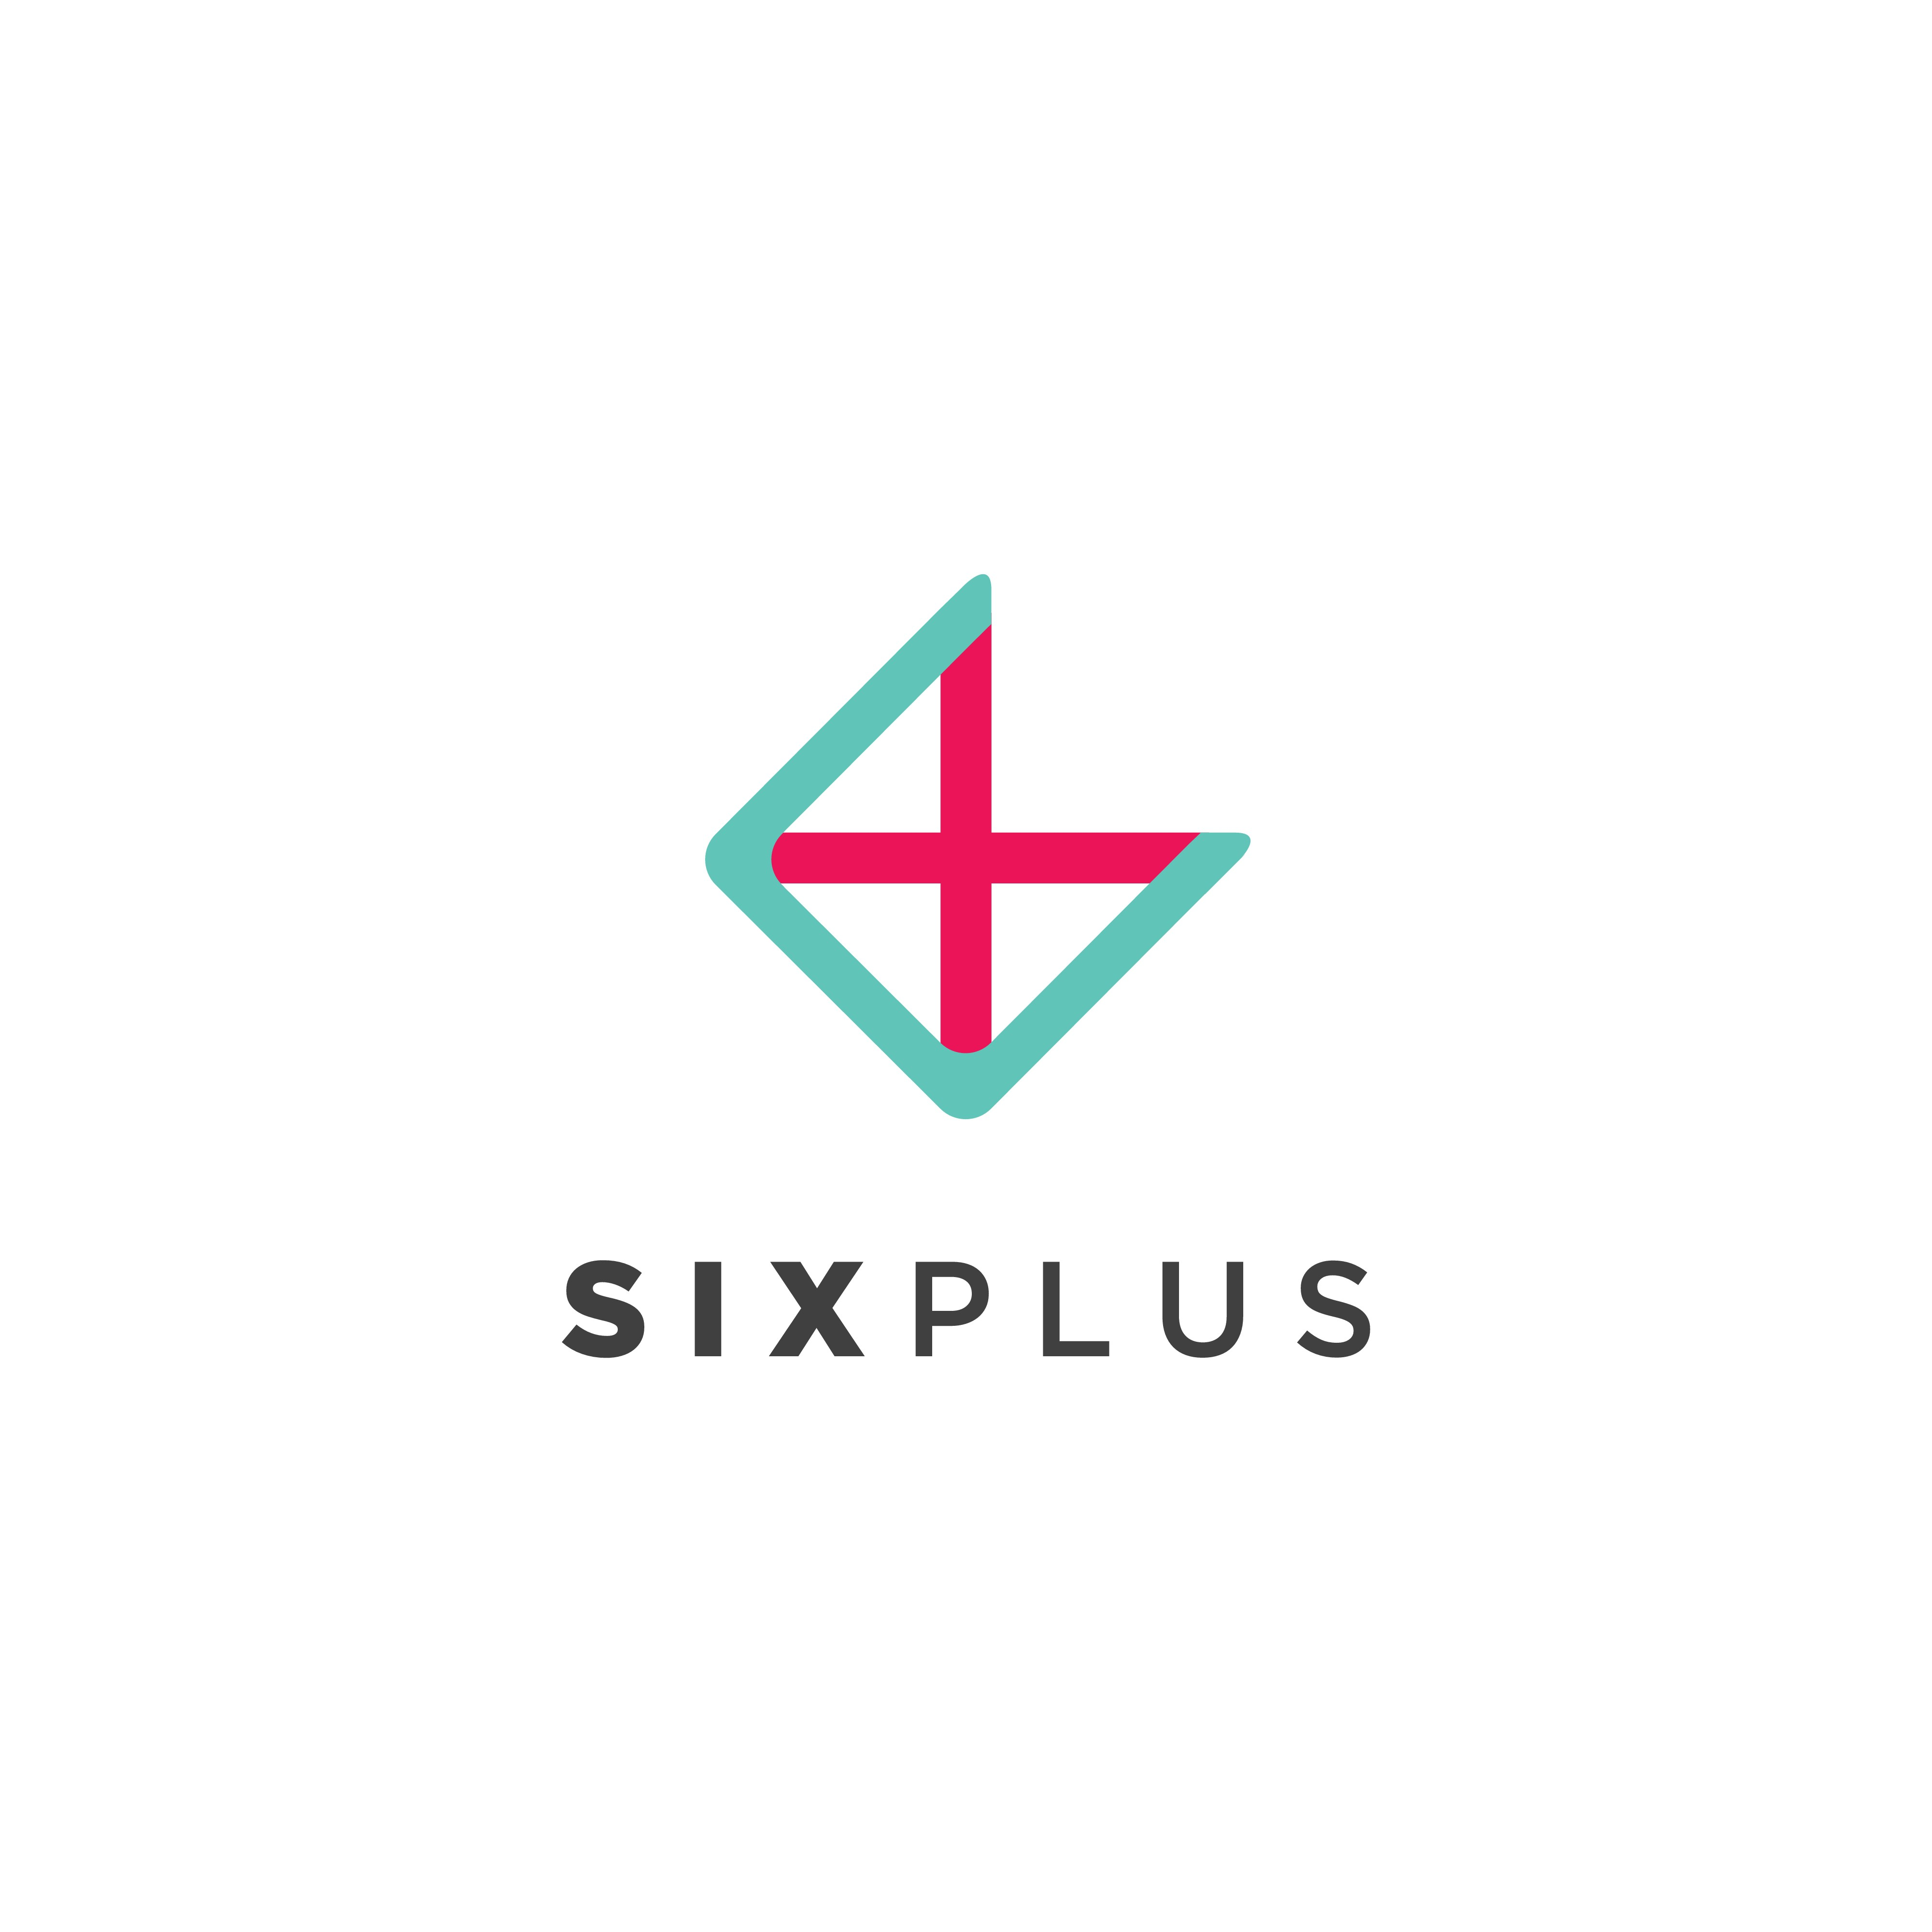 Create a sleek and sophisticated logo for SixPlus, a private dining concierge service.